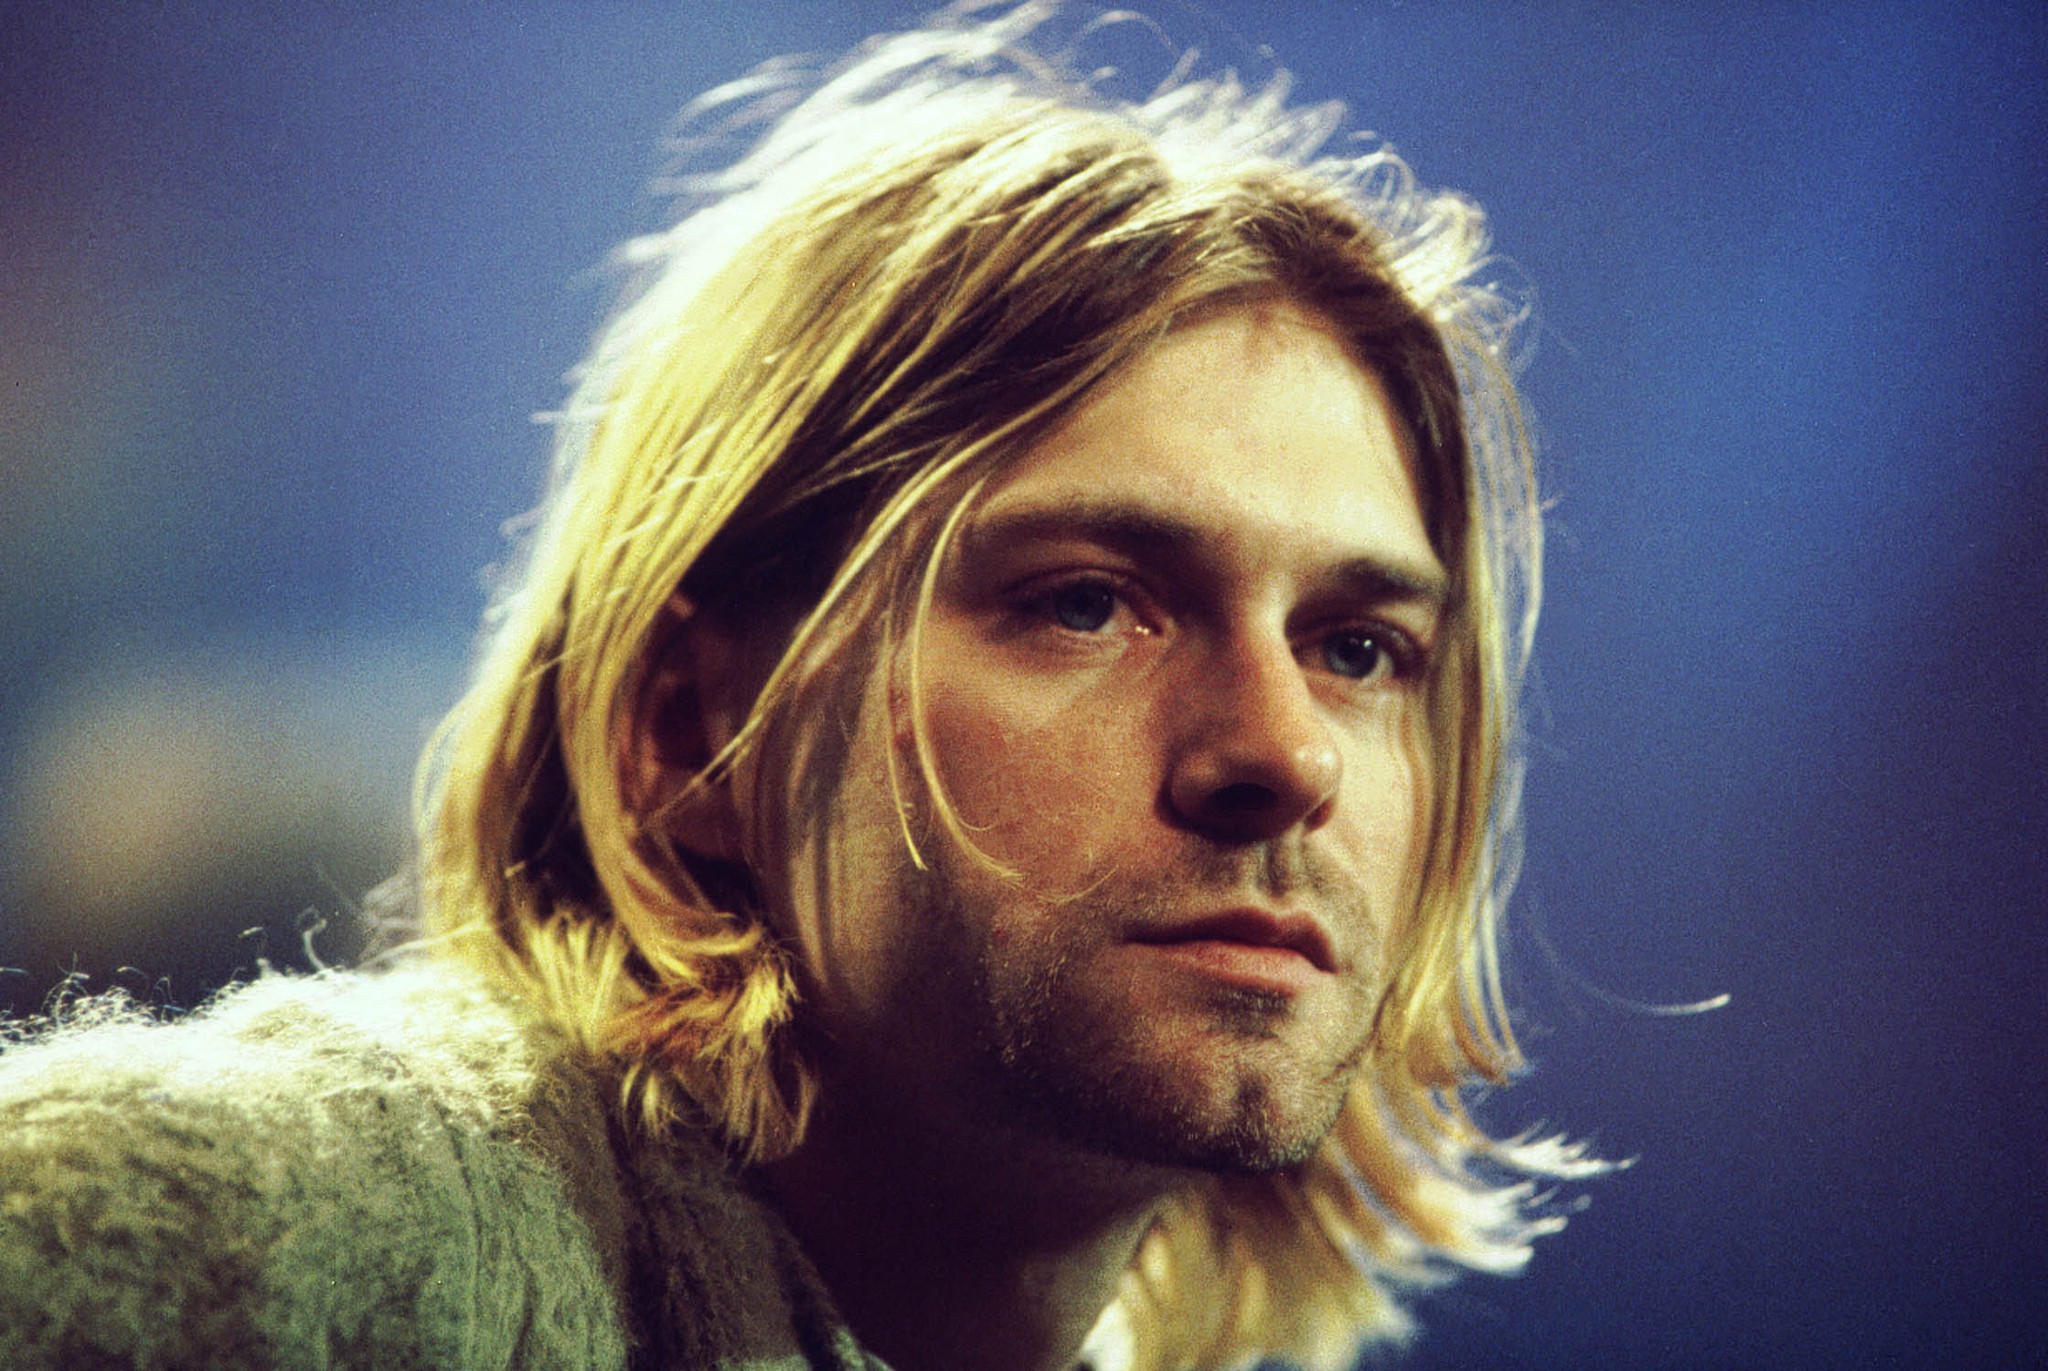 Kurt Cobain of Nirvana during the taping of MTV Unplugged at Sony Studios in New York City. The singer committed suicide in April 1994.